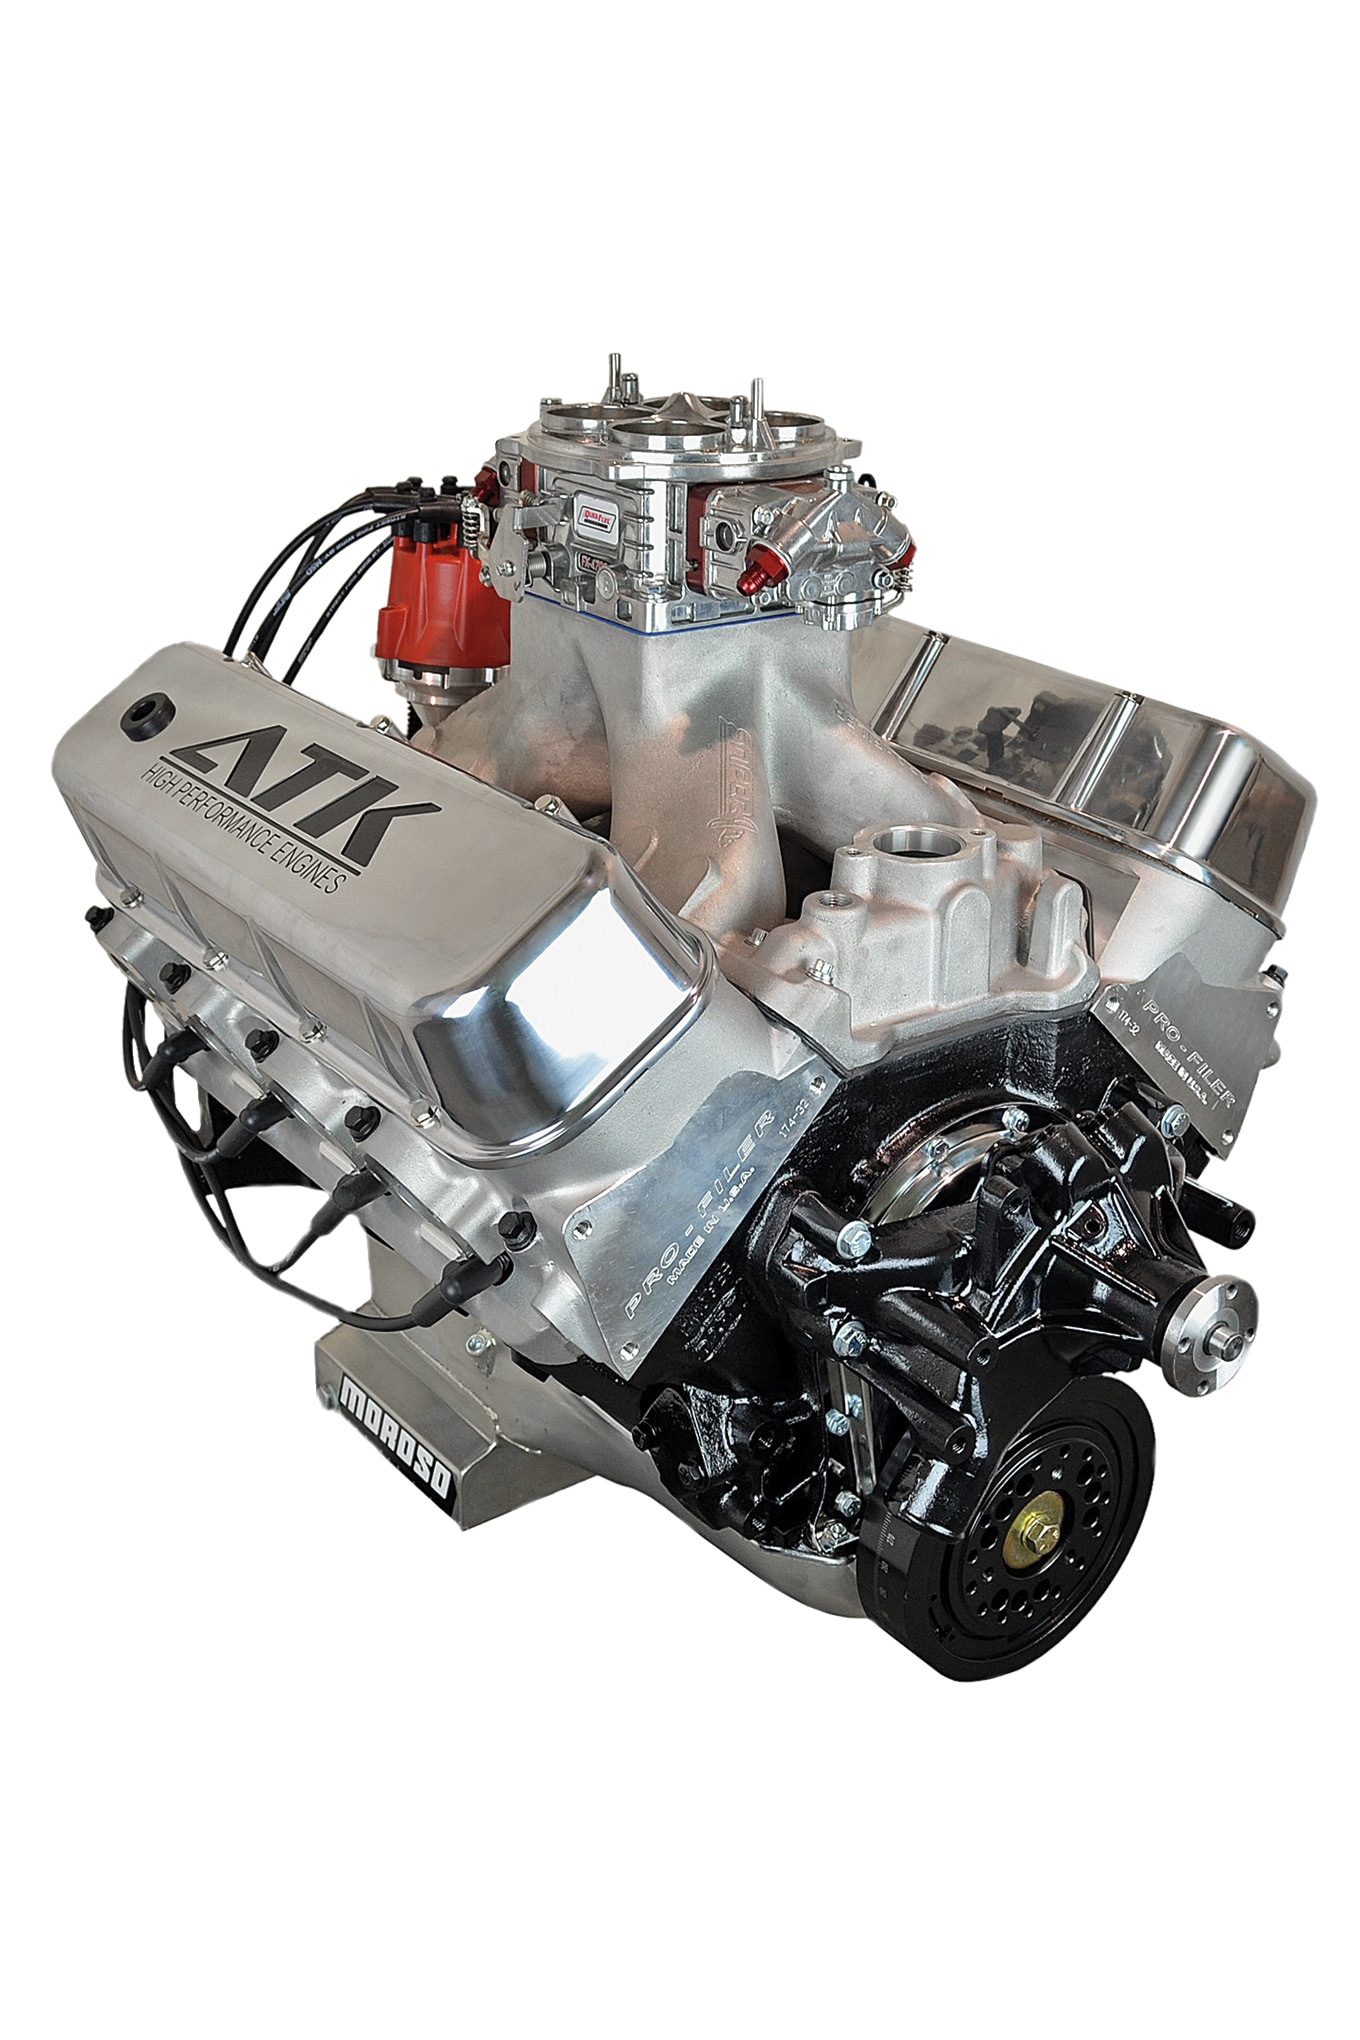 001 atk hp44c chevy 598 crate engine